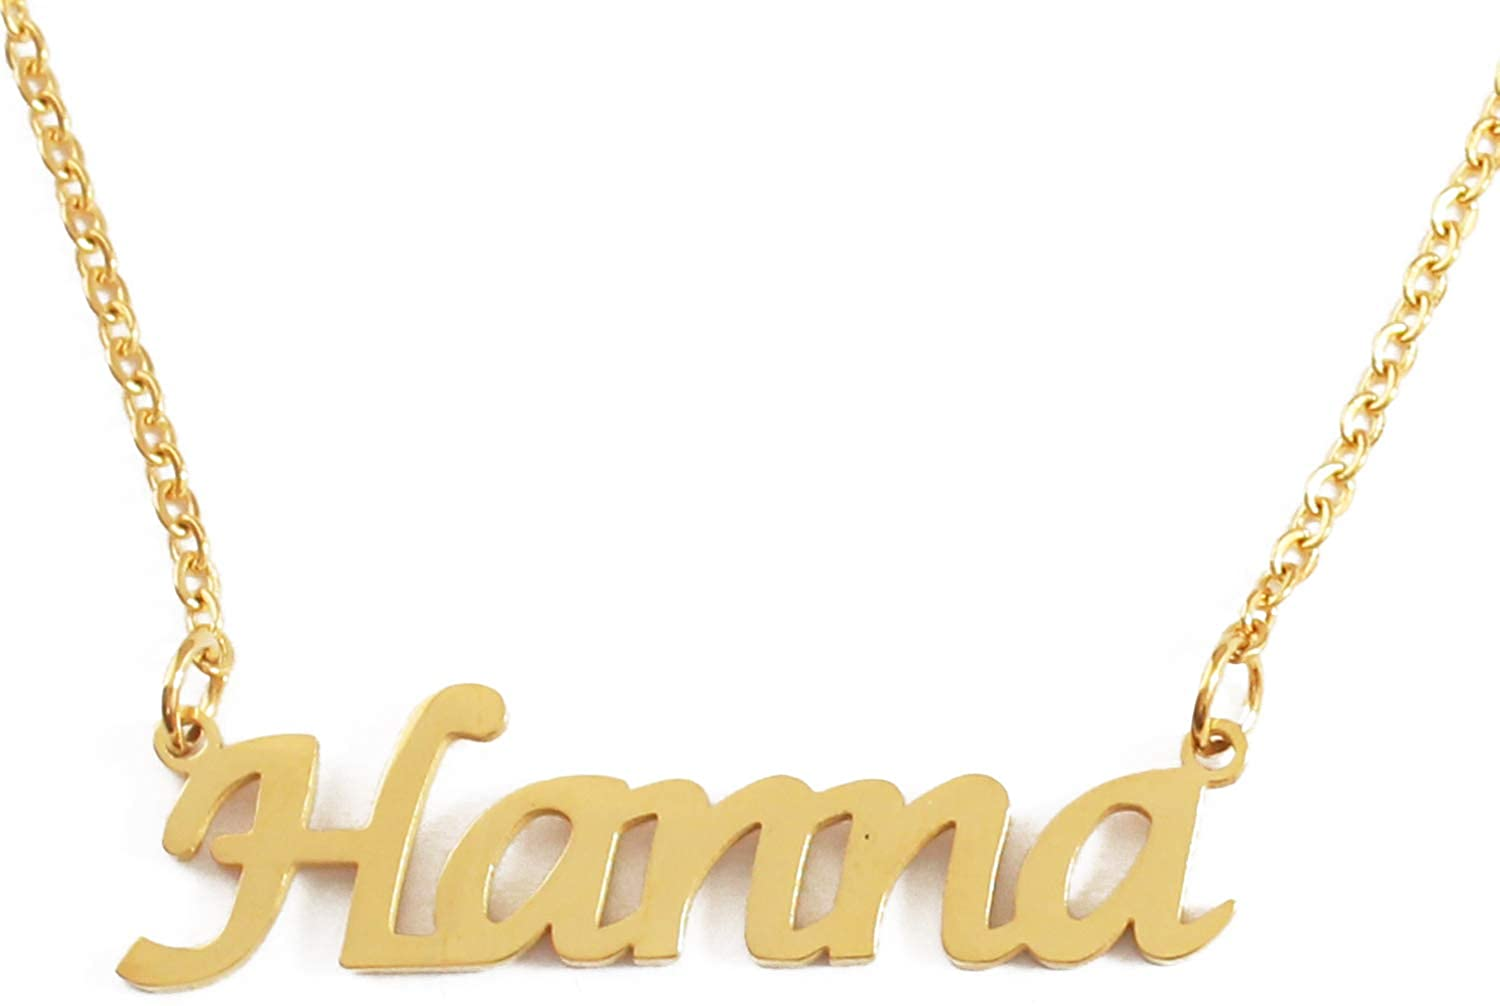 Kigu Hanna Custom Name Necklace Personalized - 18ct Gold Plated